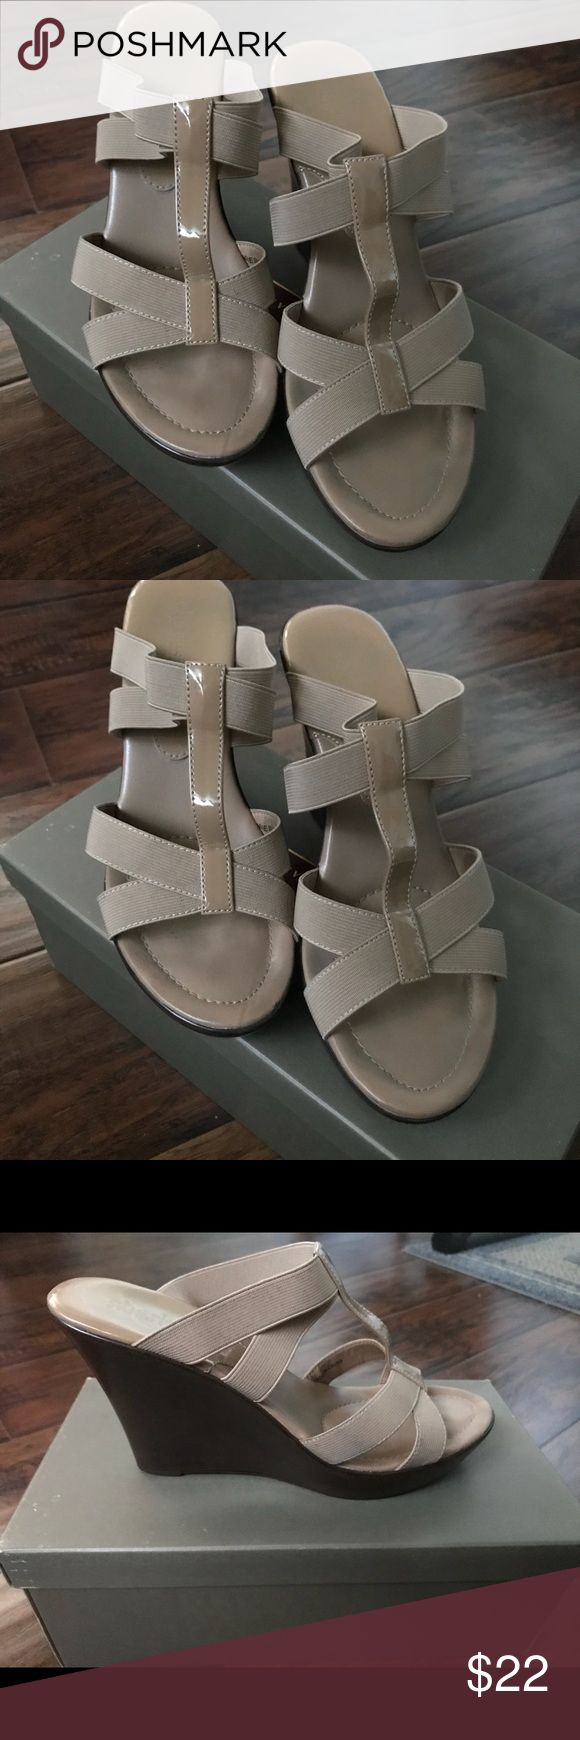 Charles David wedge heeled sandals size 8 Charles David wedge heeled 4 inch sandals size 8 in great condition. Elastic straps with patent leather strip down the middle. Slightly worn on right shoe on the toe area. Not even visible to naked eye. Very stylish. Charles David Shoes Sandals